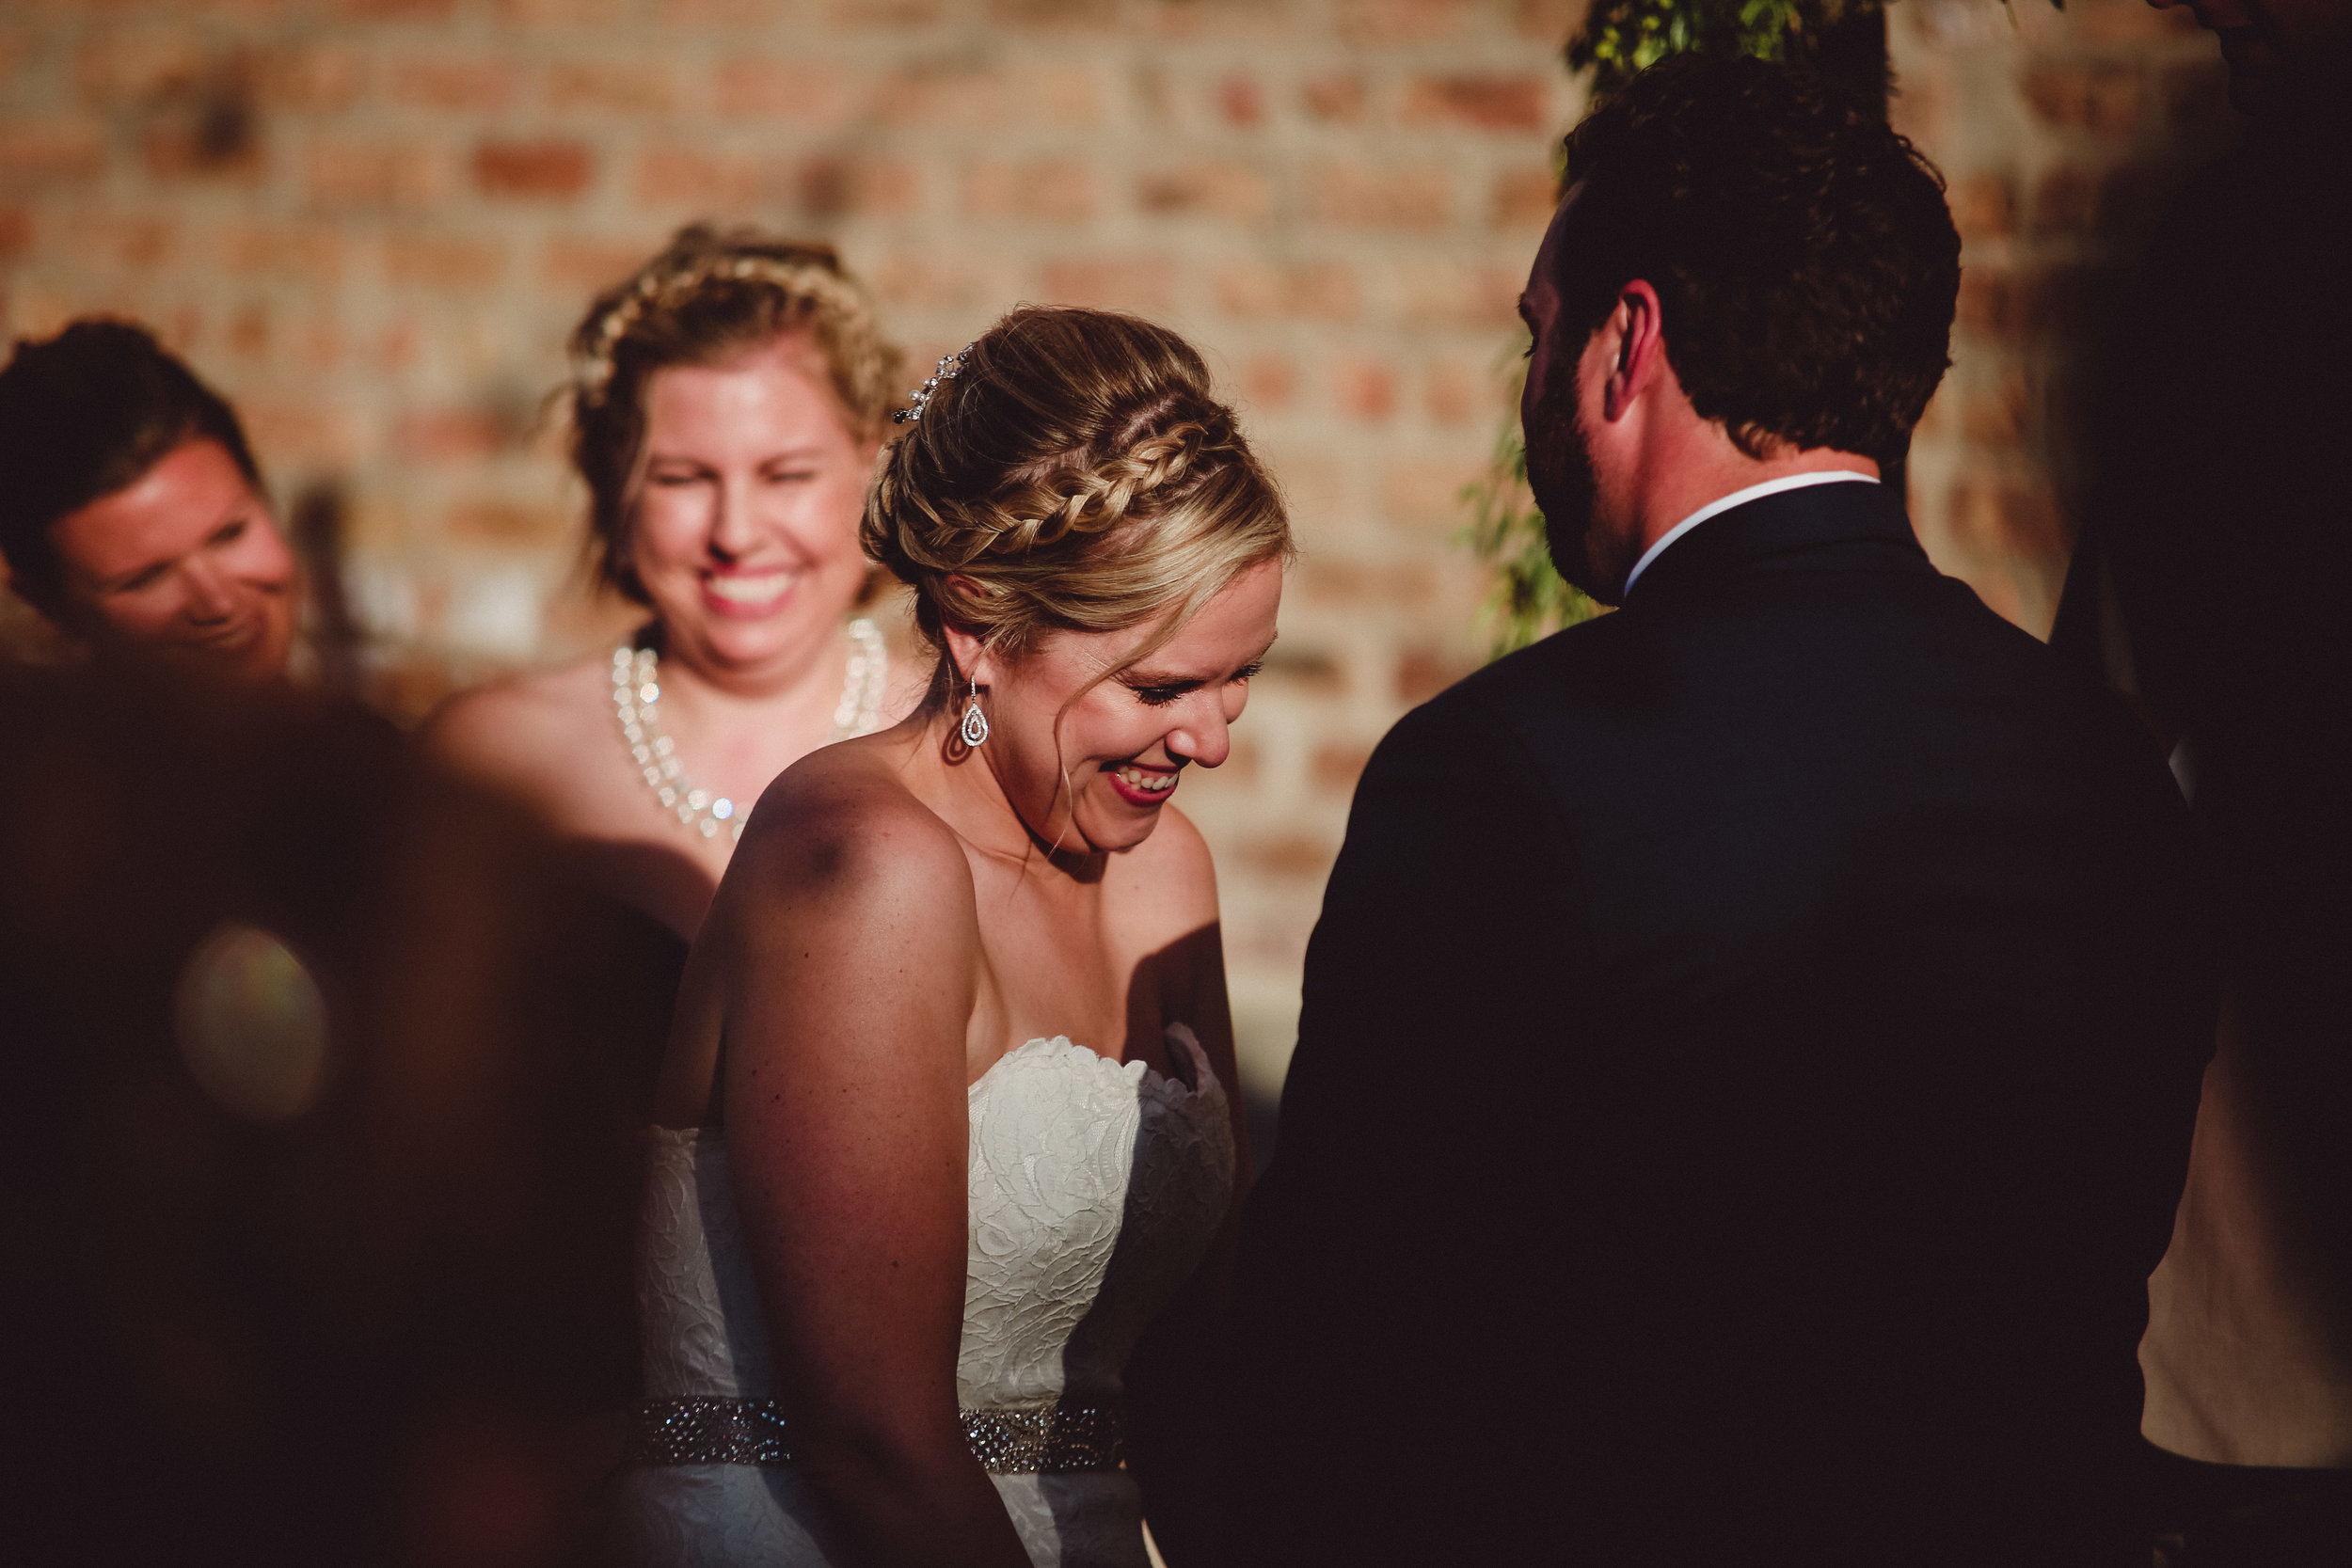 joy in the shadows of vows